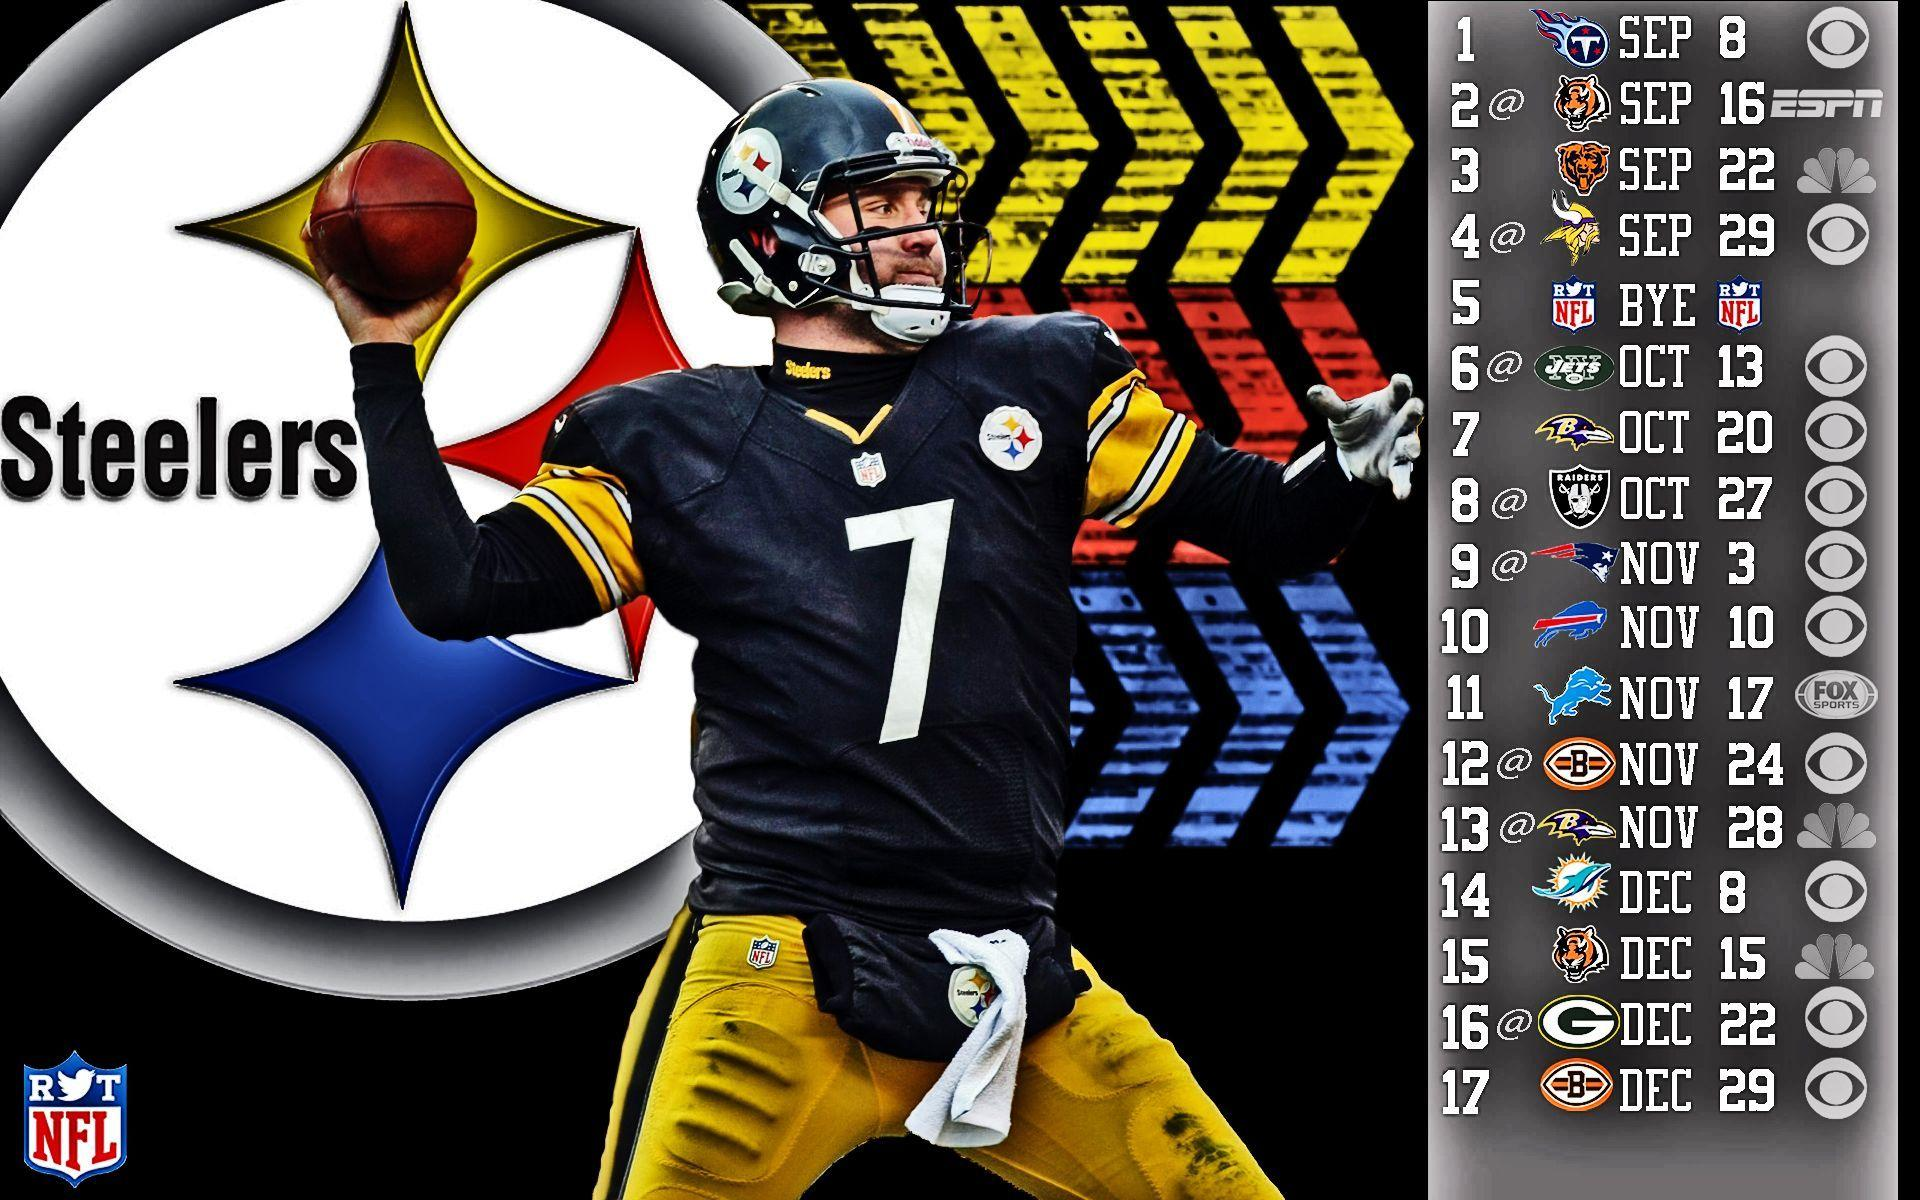 Steelers Wallpapers Schedule Group